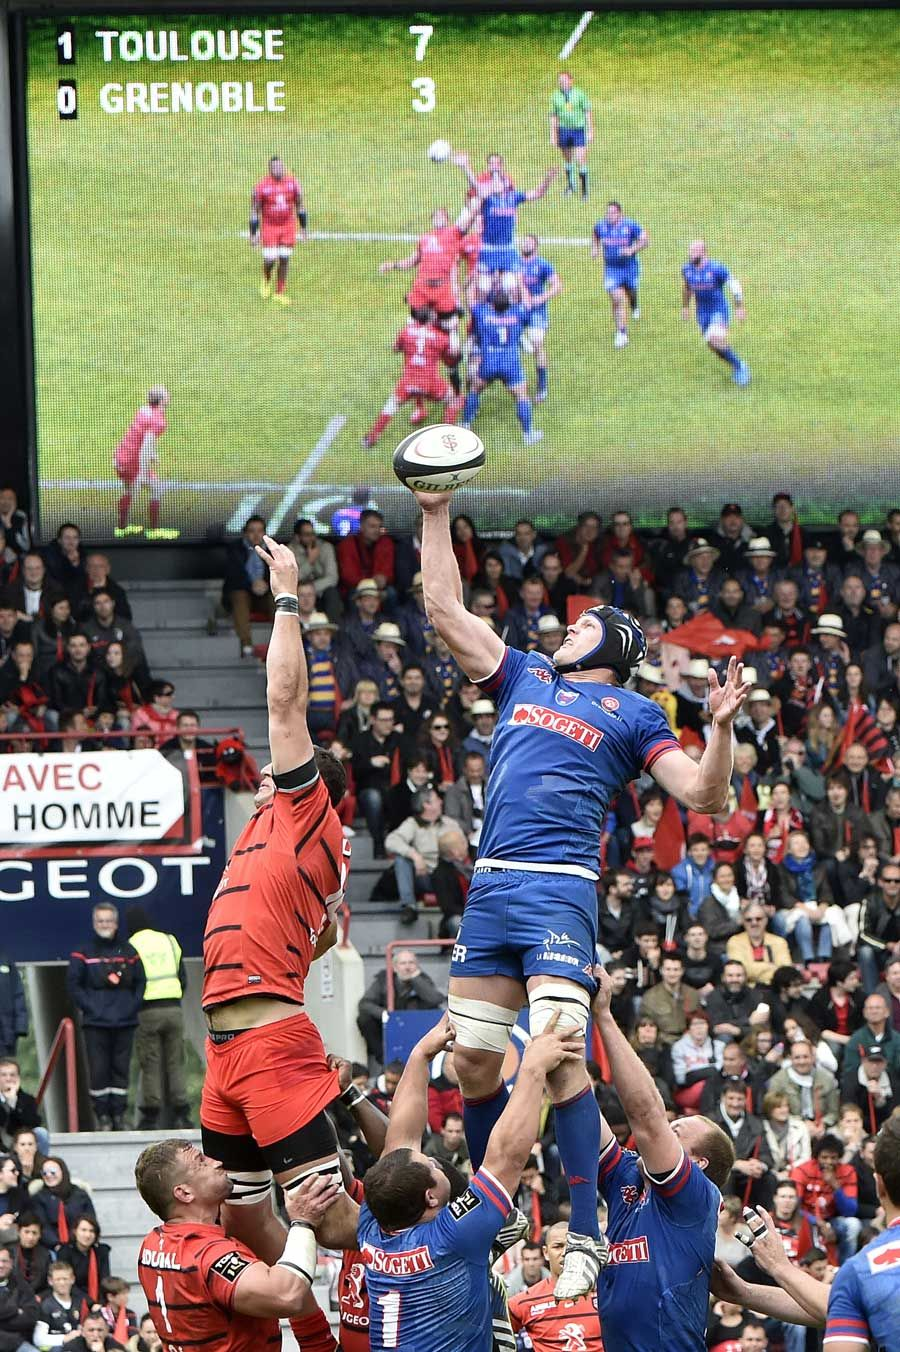 Toulouse and Grenoble contest a lineout